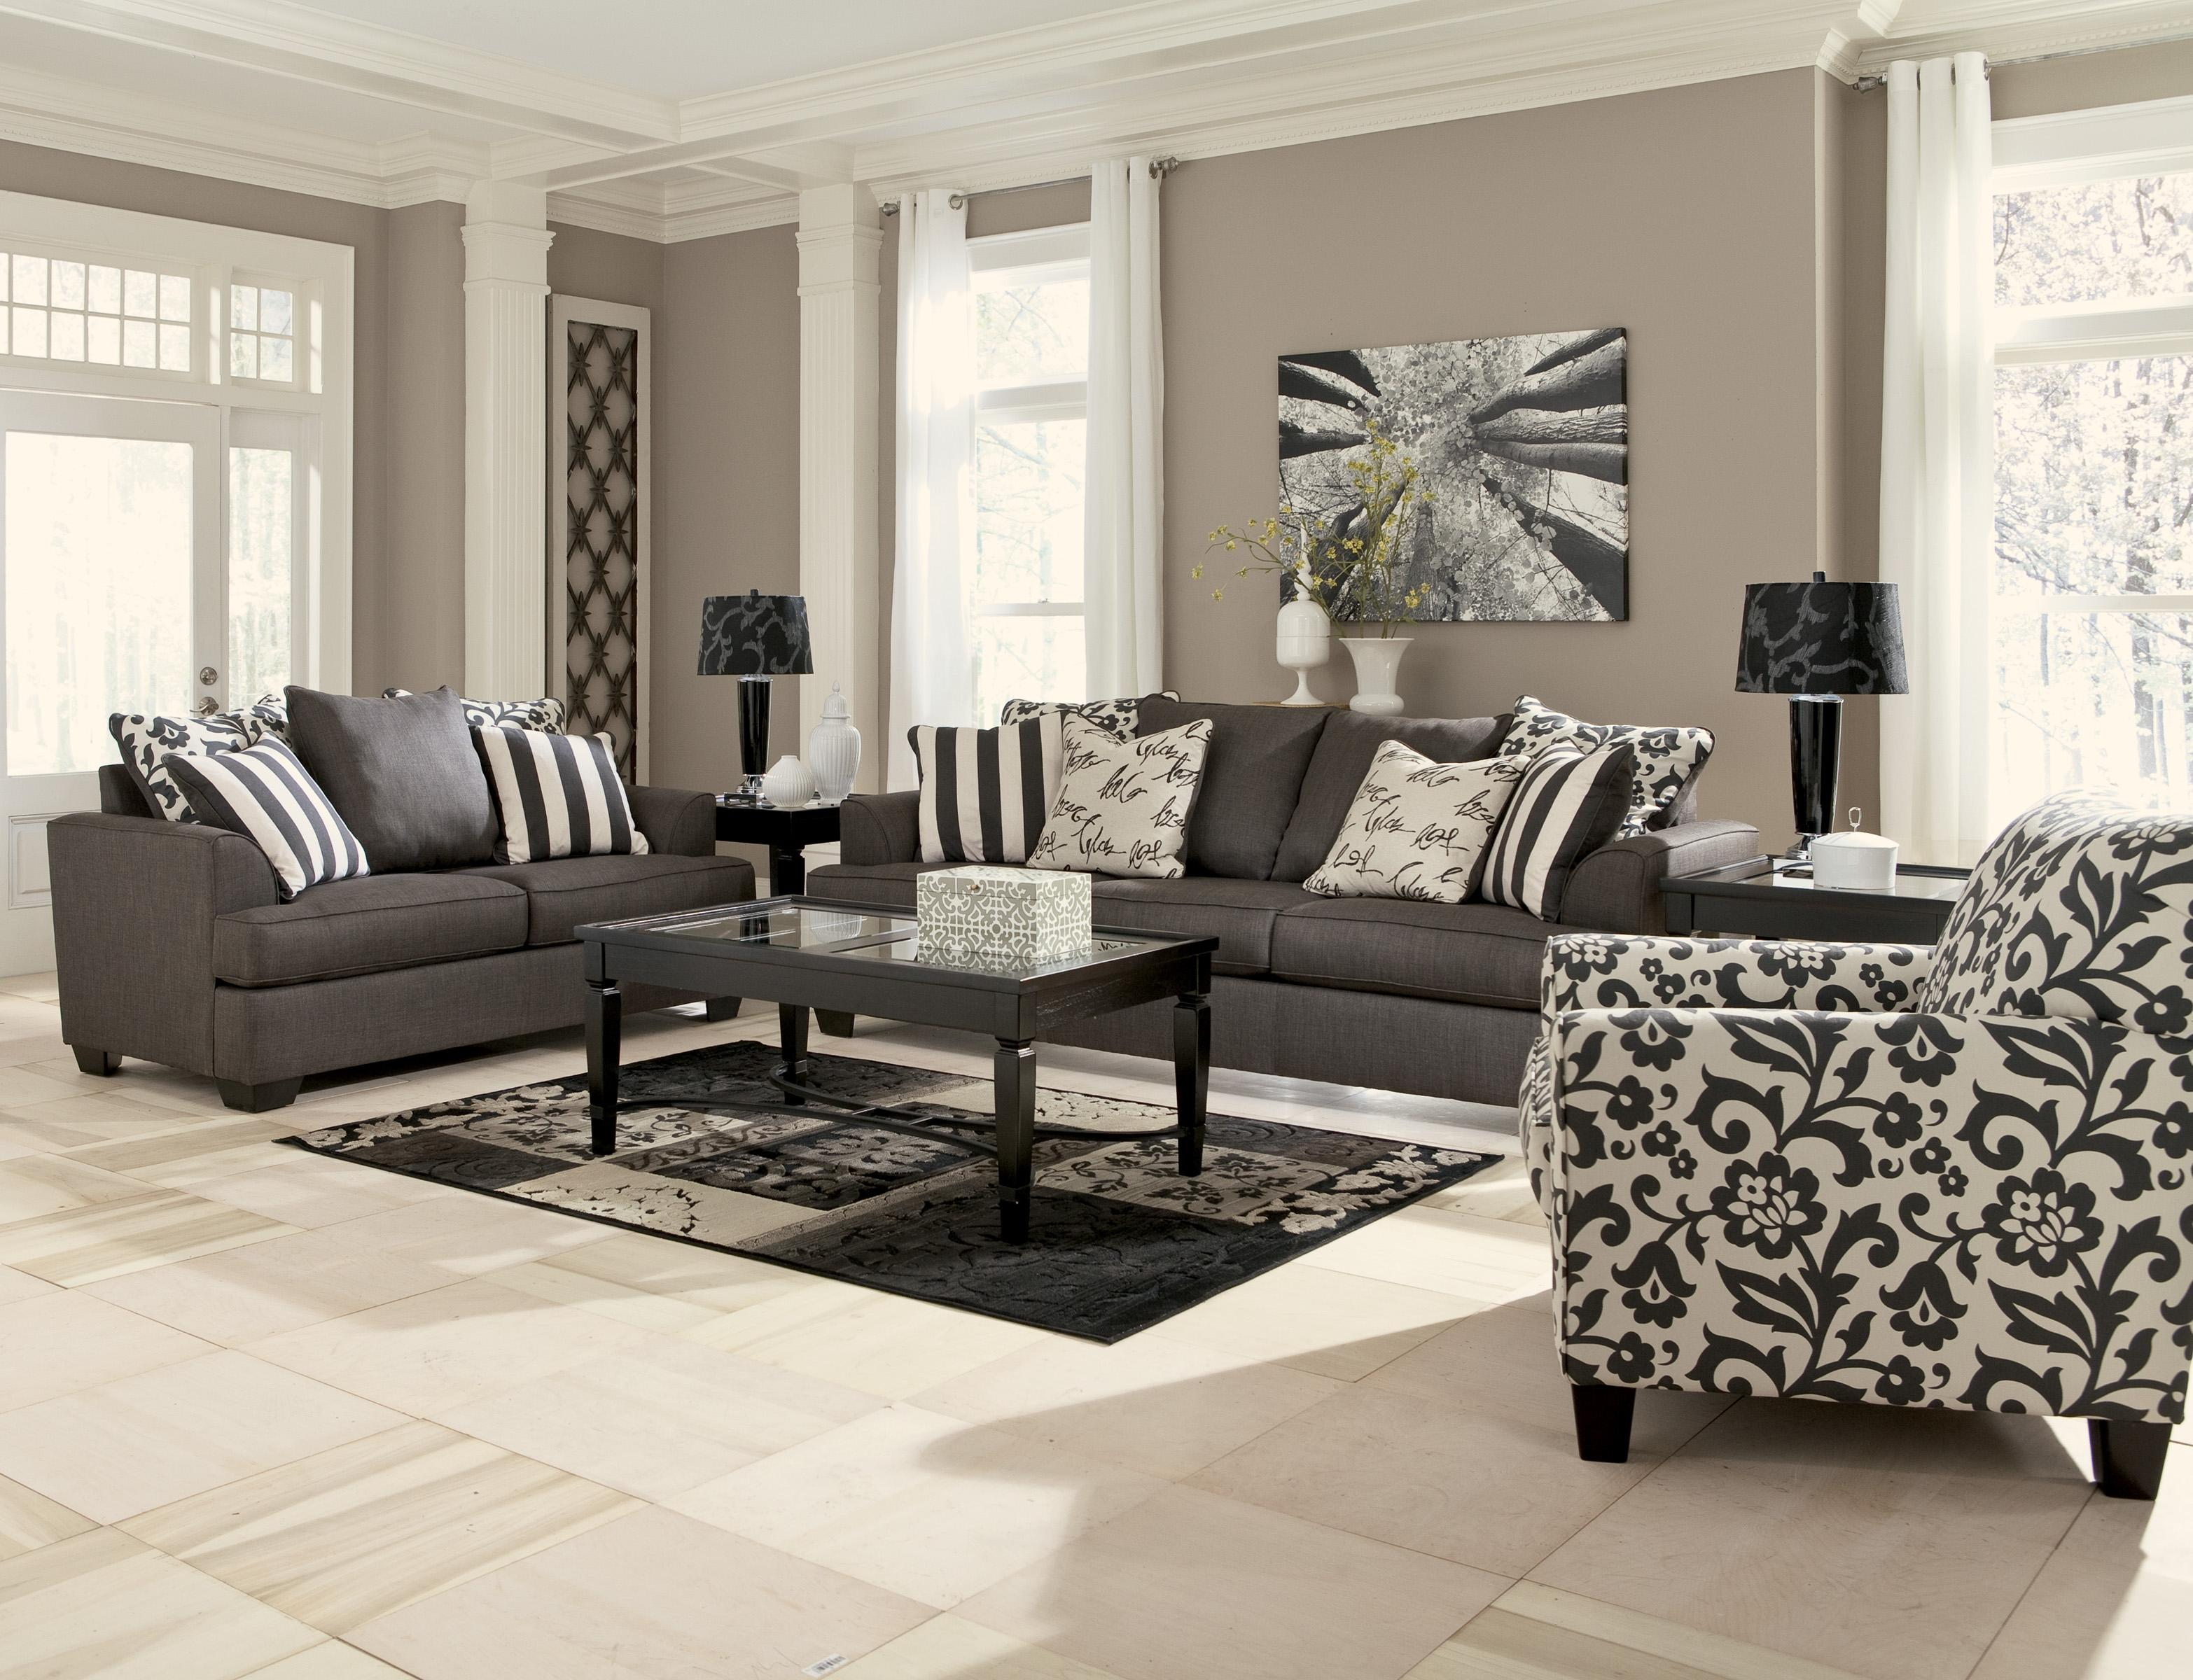 Signature Design By Ashley Levon Charcoal Stationary Living Room Group Wa